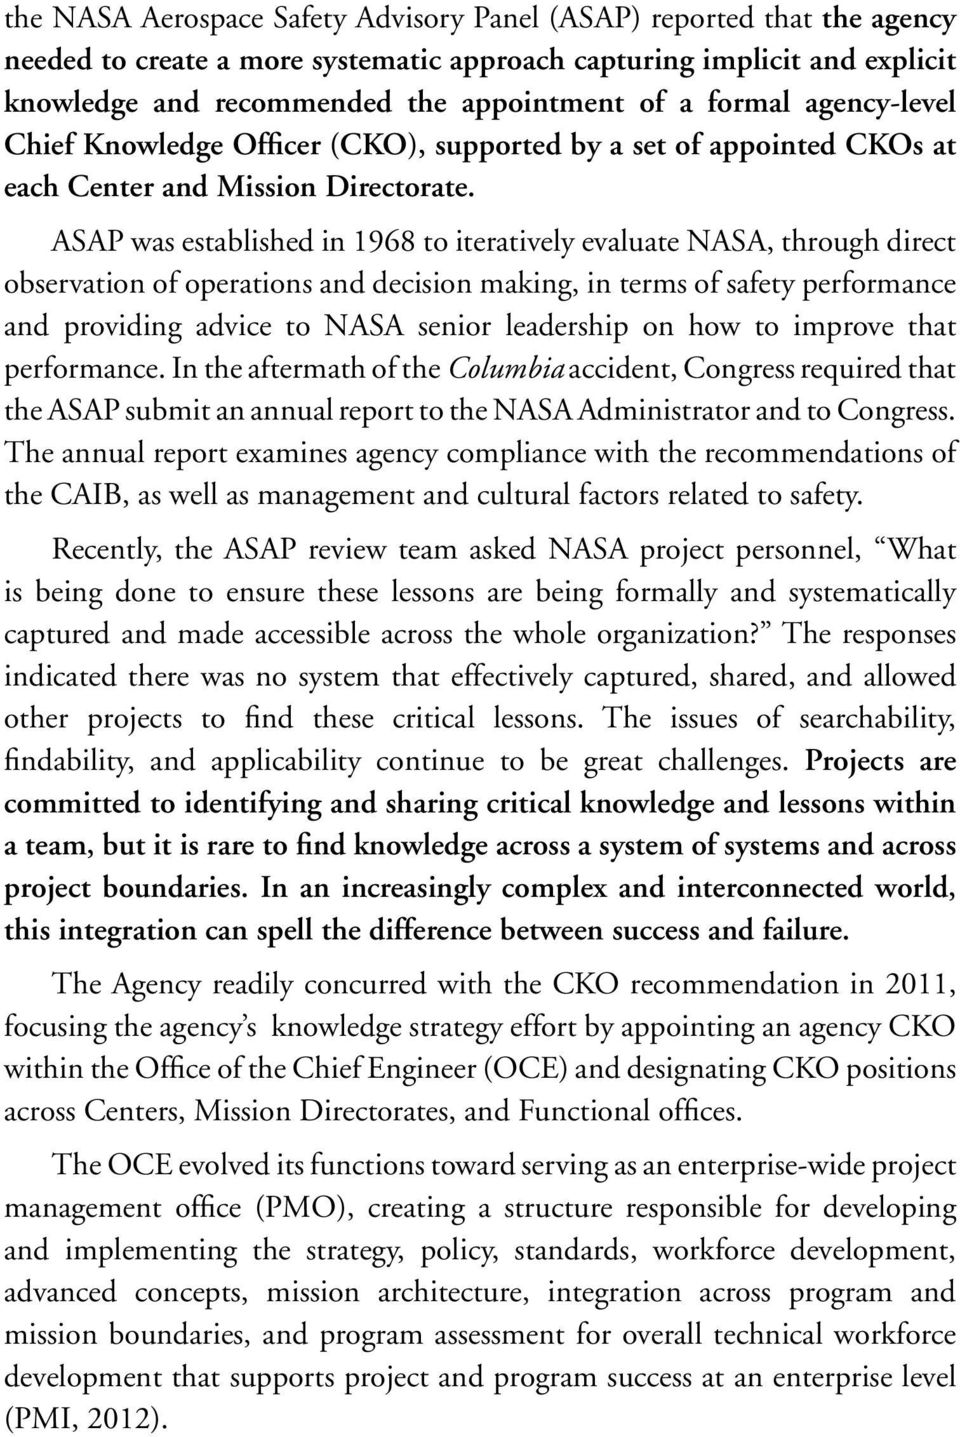 ASAP was established in 1968 to iteratively evaluate NASA, through direct observation of operations and decision making, in terms of safety performance and providing advice to NASA senior leadership